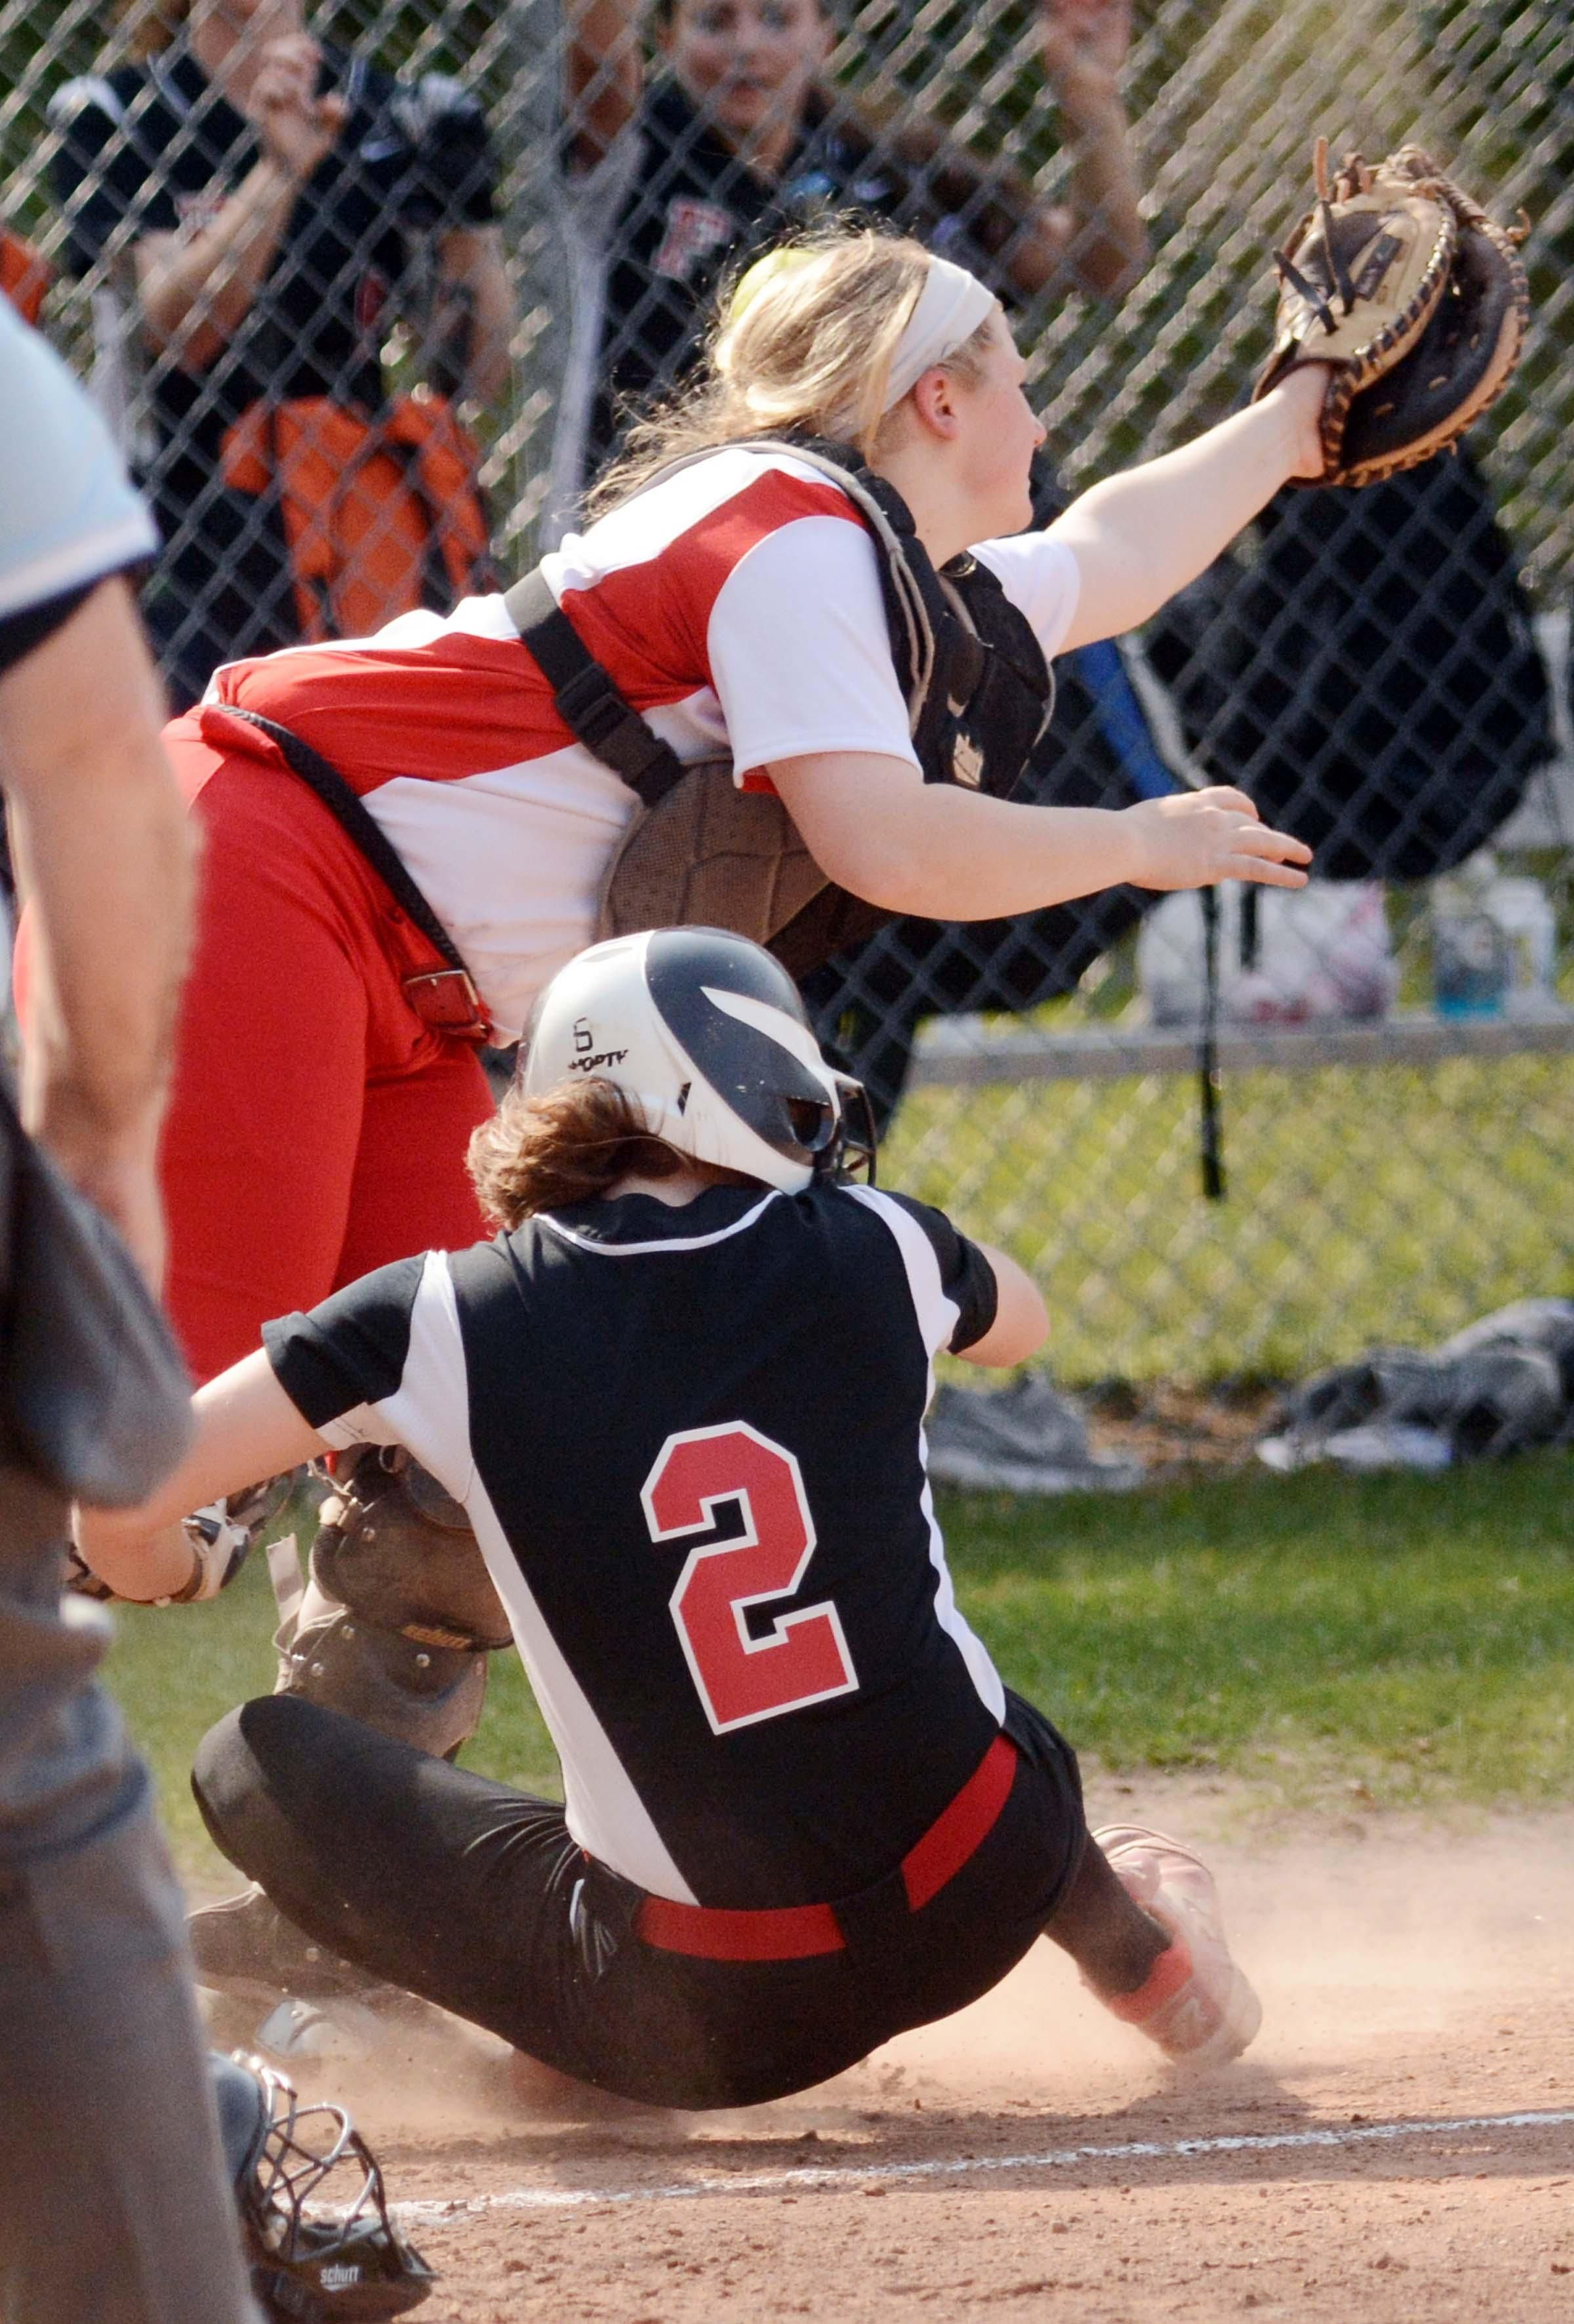 A pop fly to right field. It sounds simple, but it was a recipe for disaster for Norwich Free Academy in a 2-1, eight-inning loss to the No. 1 team in the state, Fitch, on Thursday. Bulletin Sports has the story: http://www.norwichbulletin.com/sports/20160512/chaotic-play-helps-no-1-fitch-softball-hold-off-nfa-2-1-in-8-innings #Ctsports #CT #Connecticut #HSSports #HSSoftball #NorwichCT #NorwichFreeAcademy #NFA #FitchHS #Softball